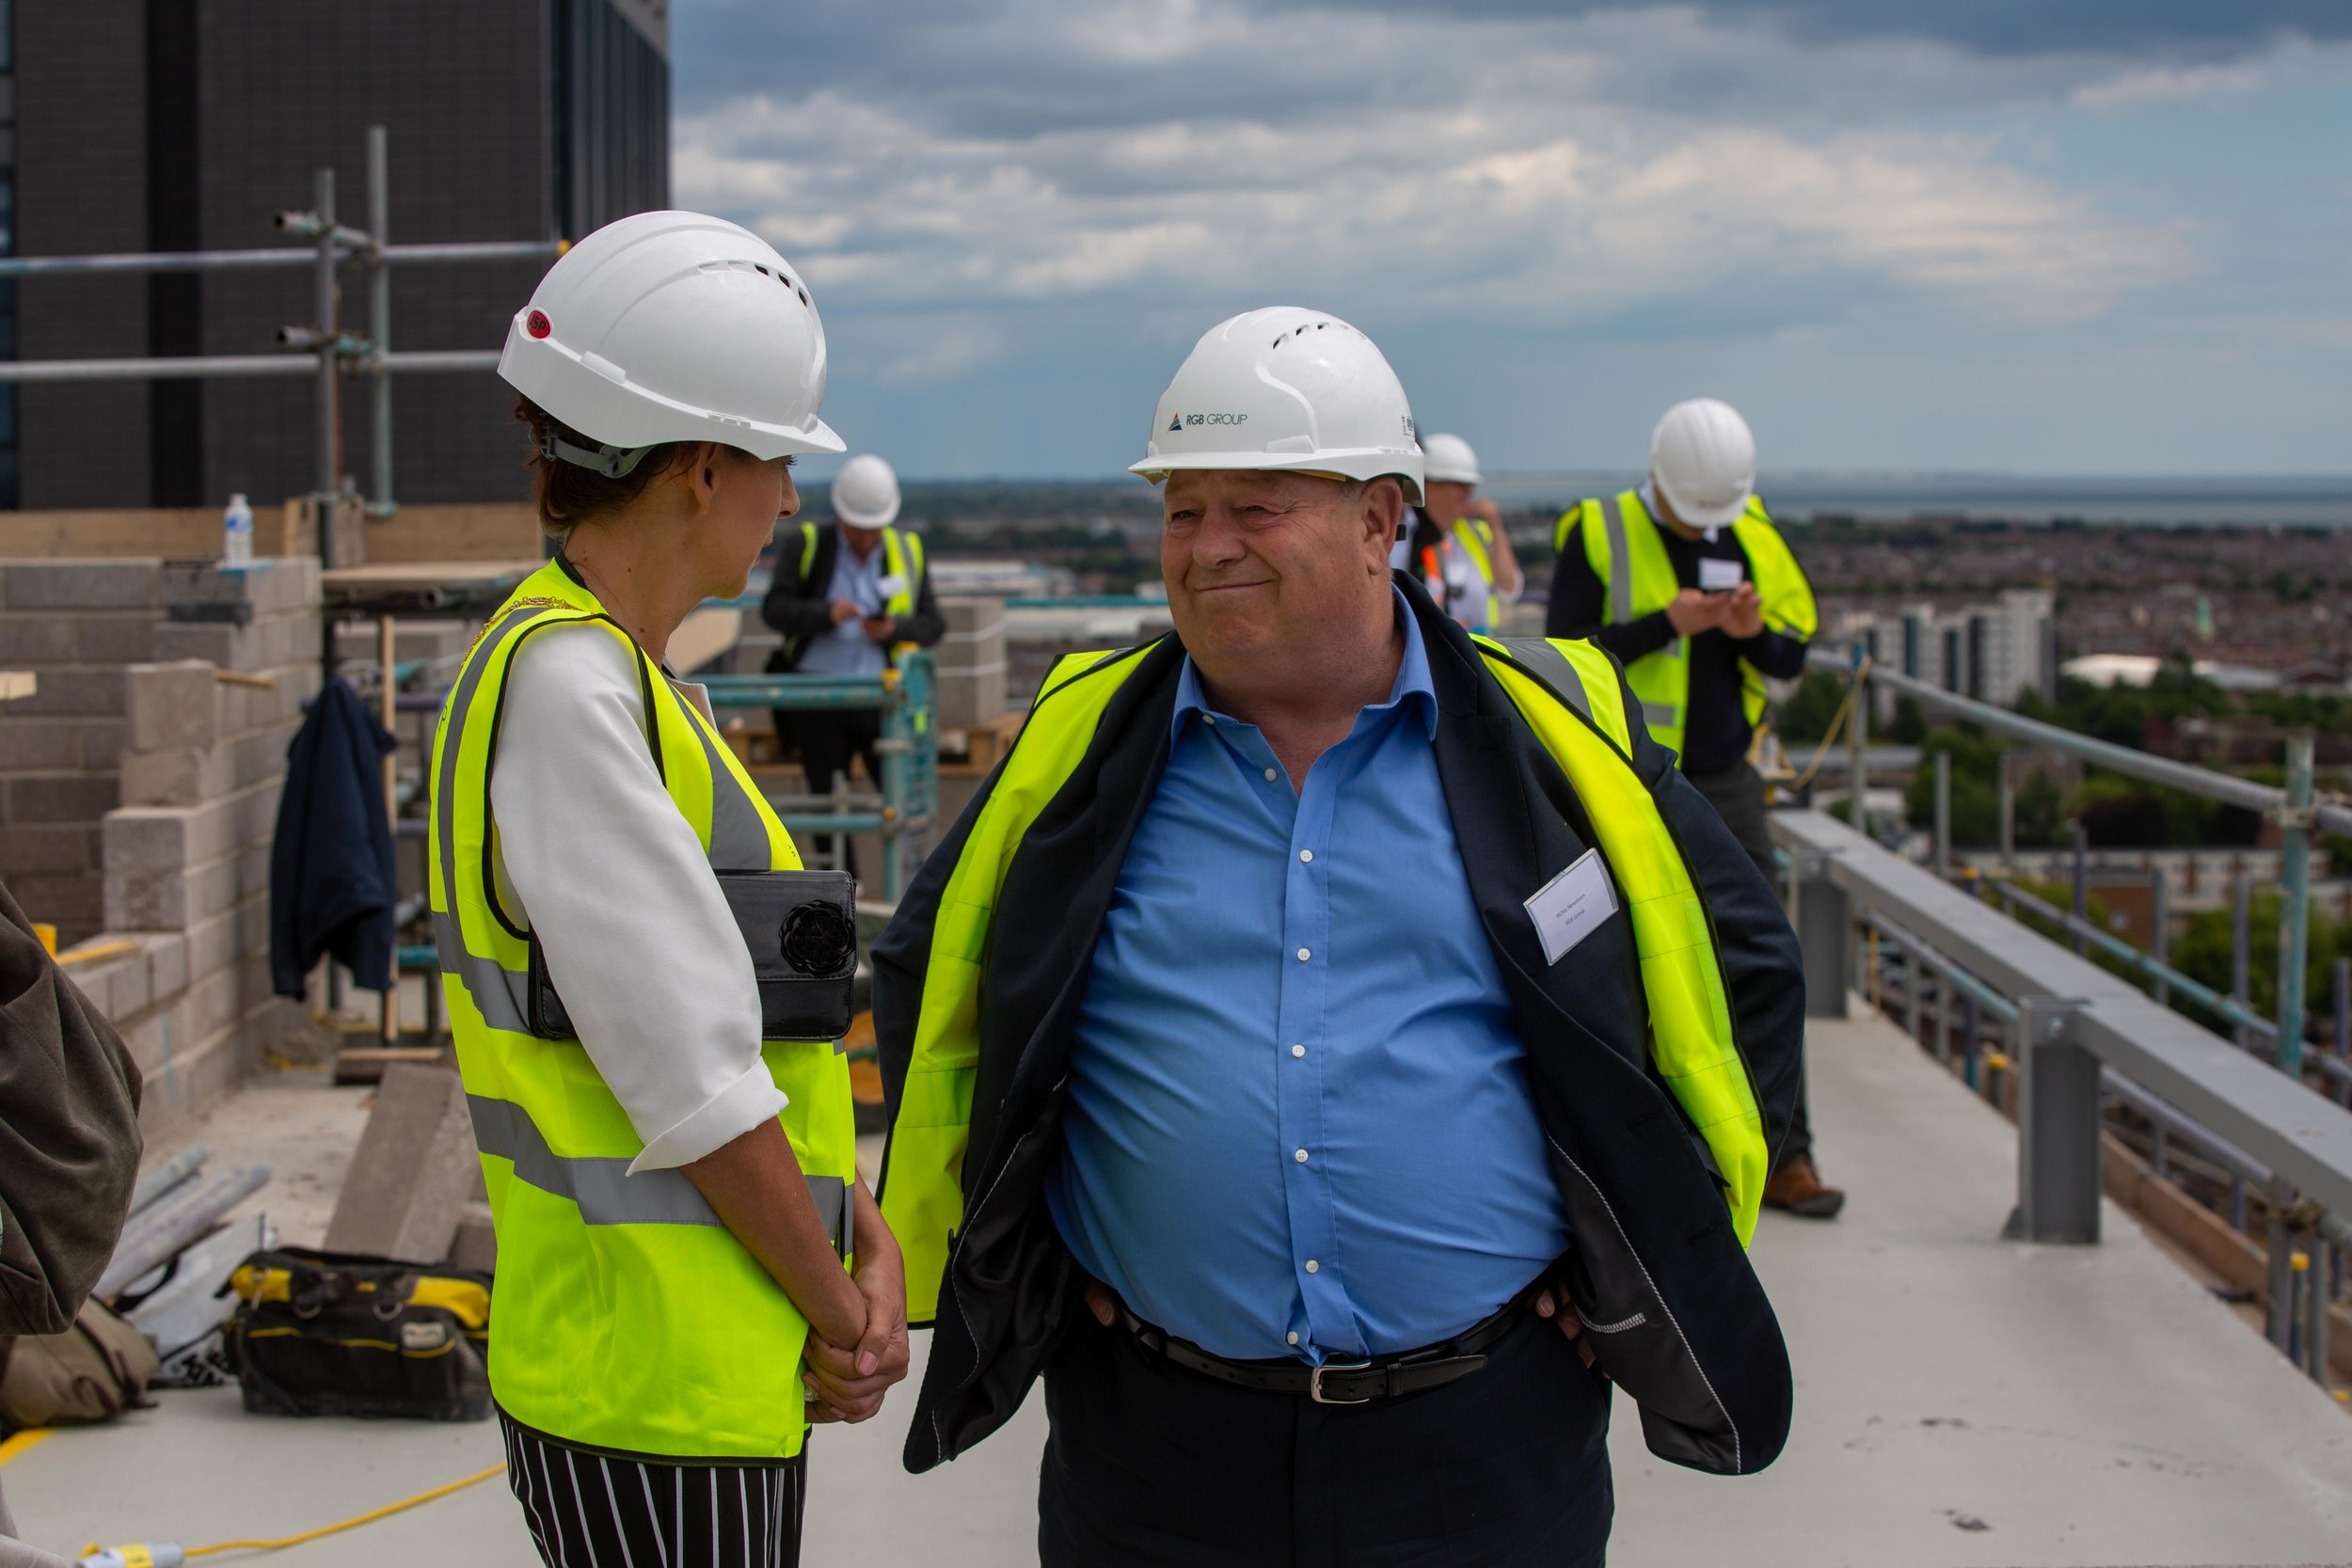 Stanhope House Topping Out 28.05.19 - Solent Sky Services--77.JPG